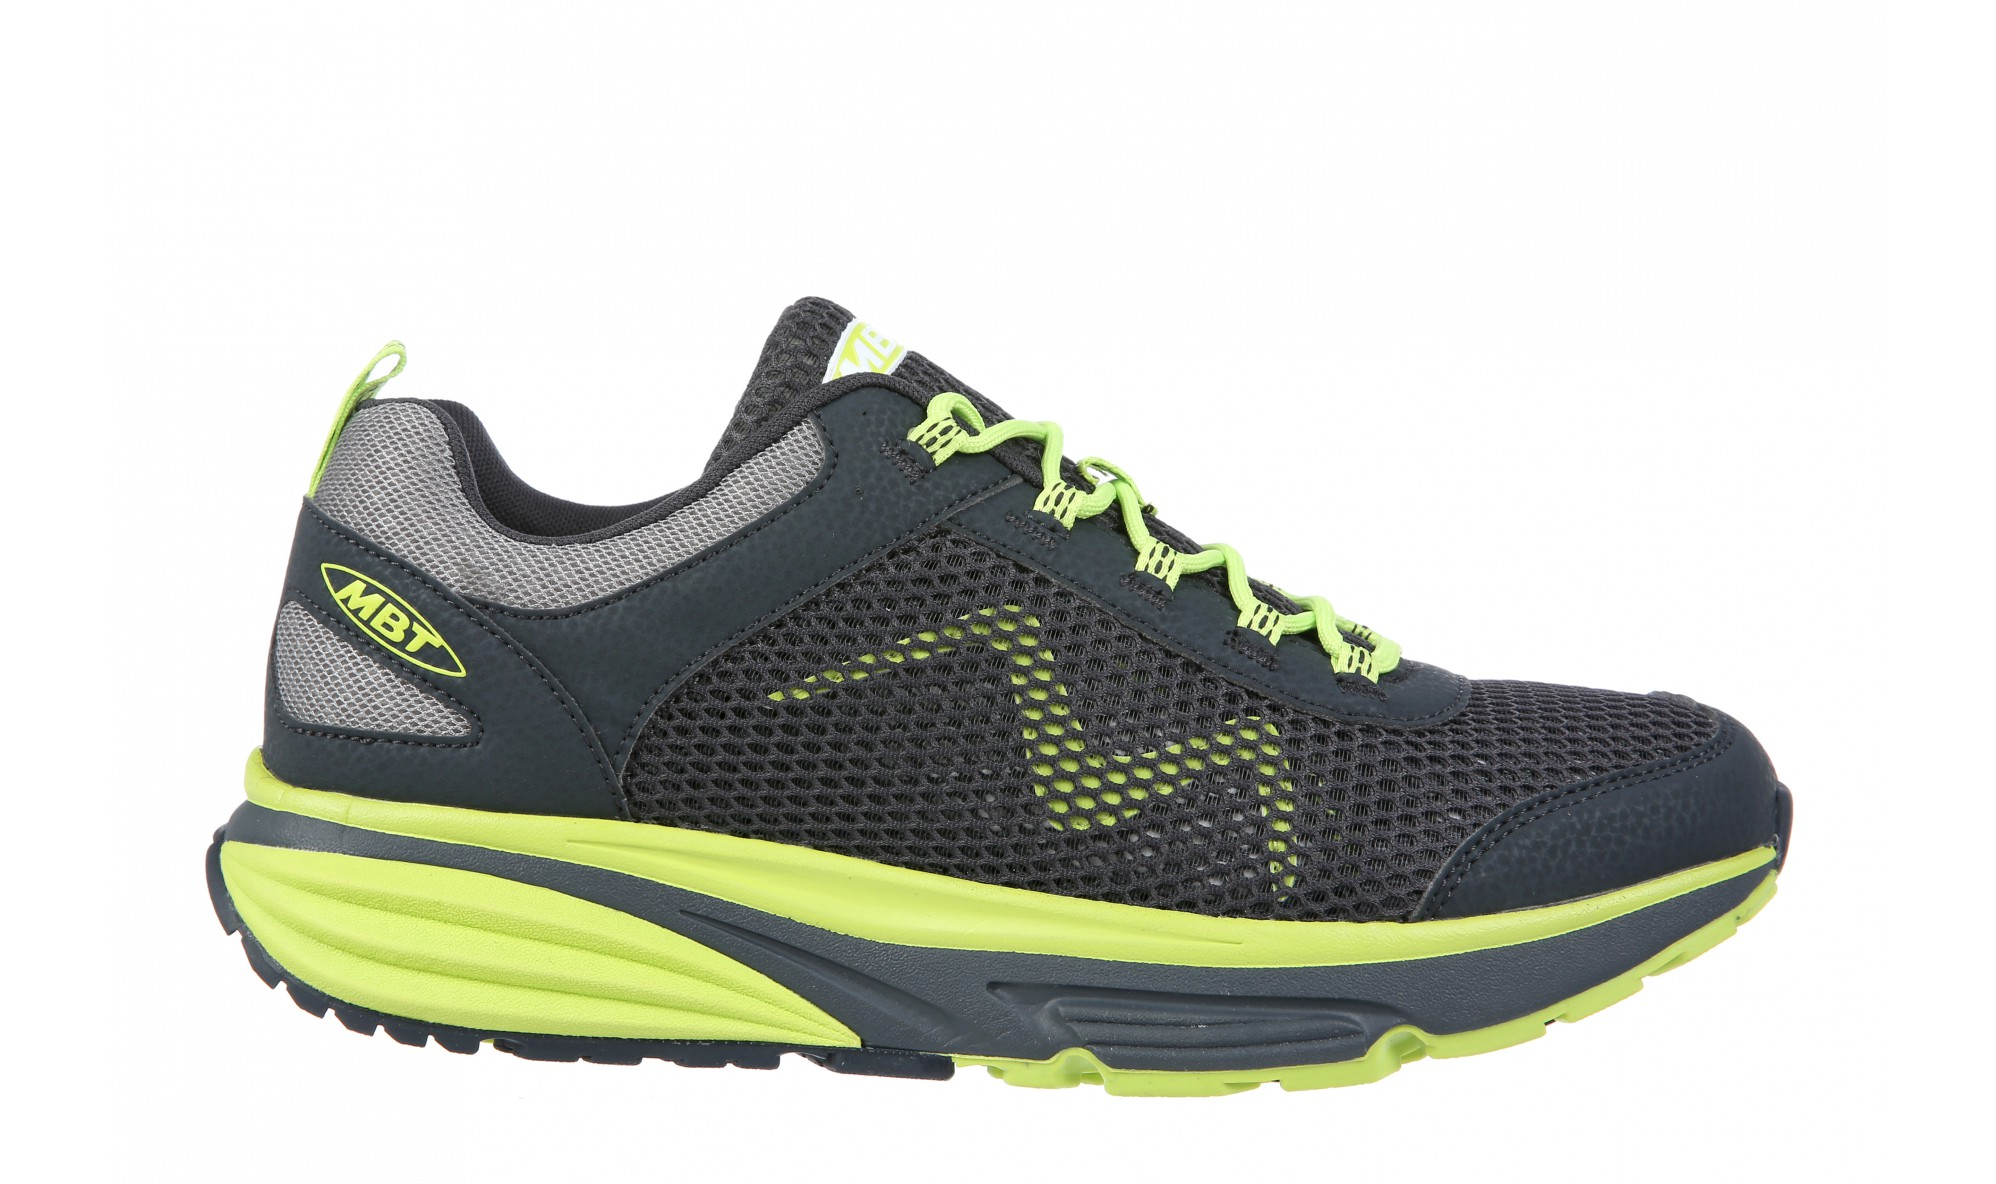 MBT Colorado 17 Men's Charcoal Gray / Neon Lime